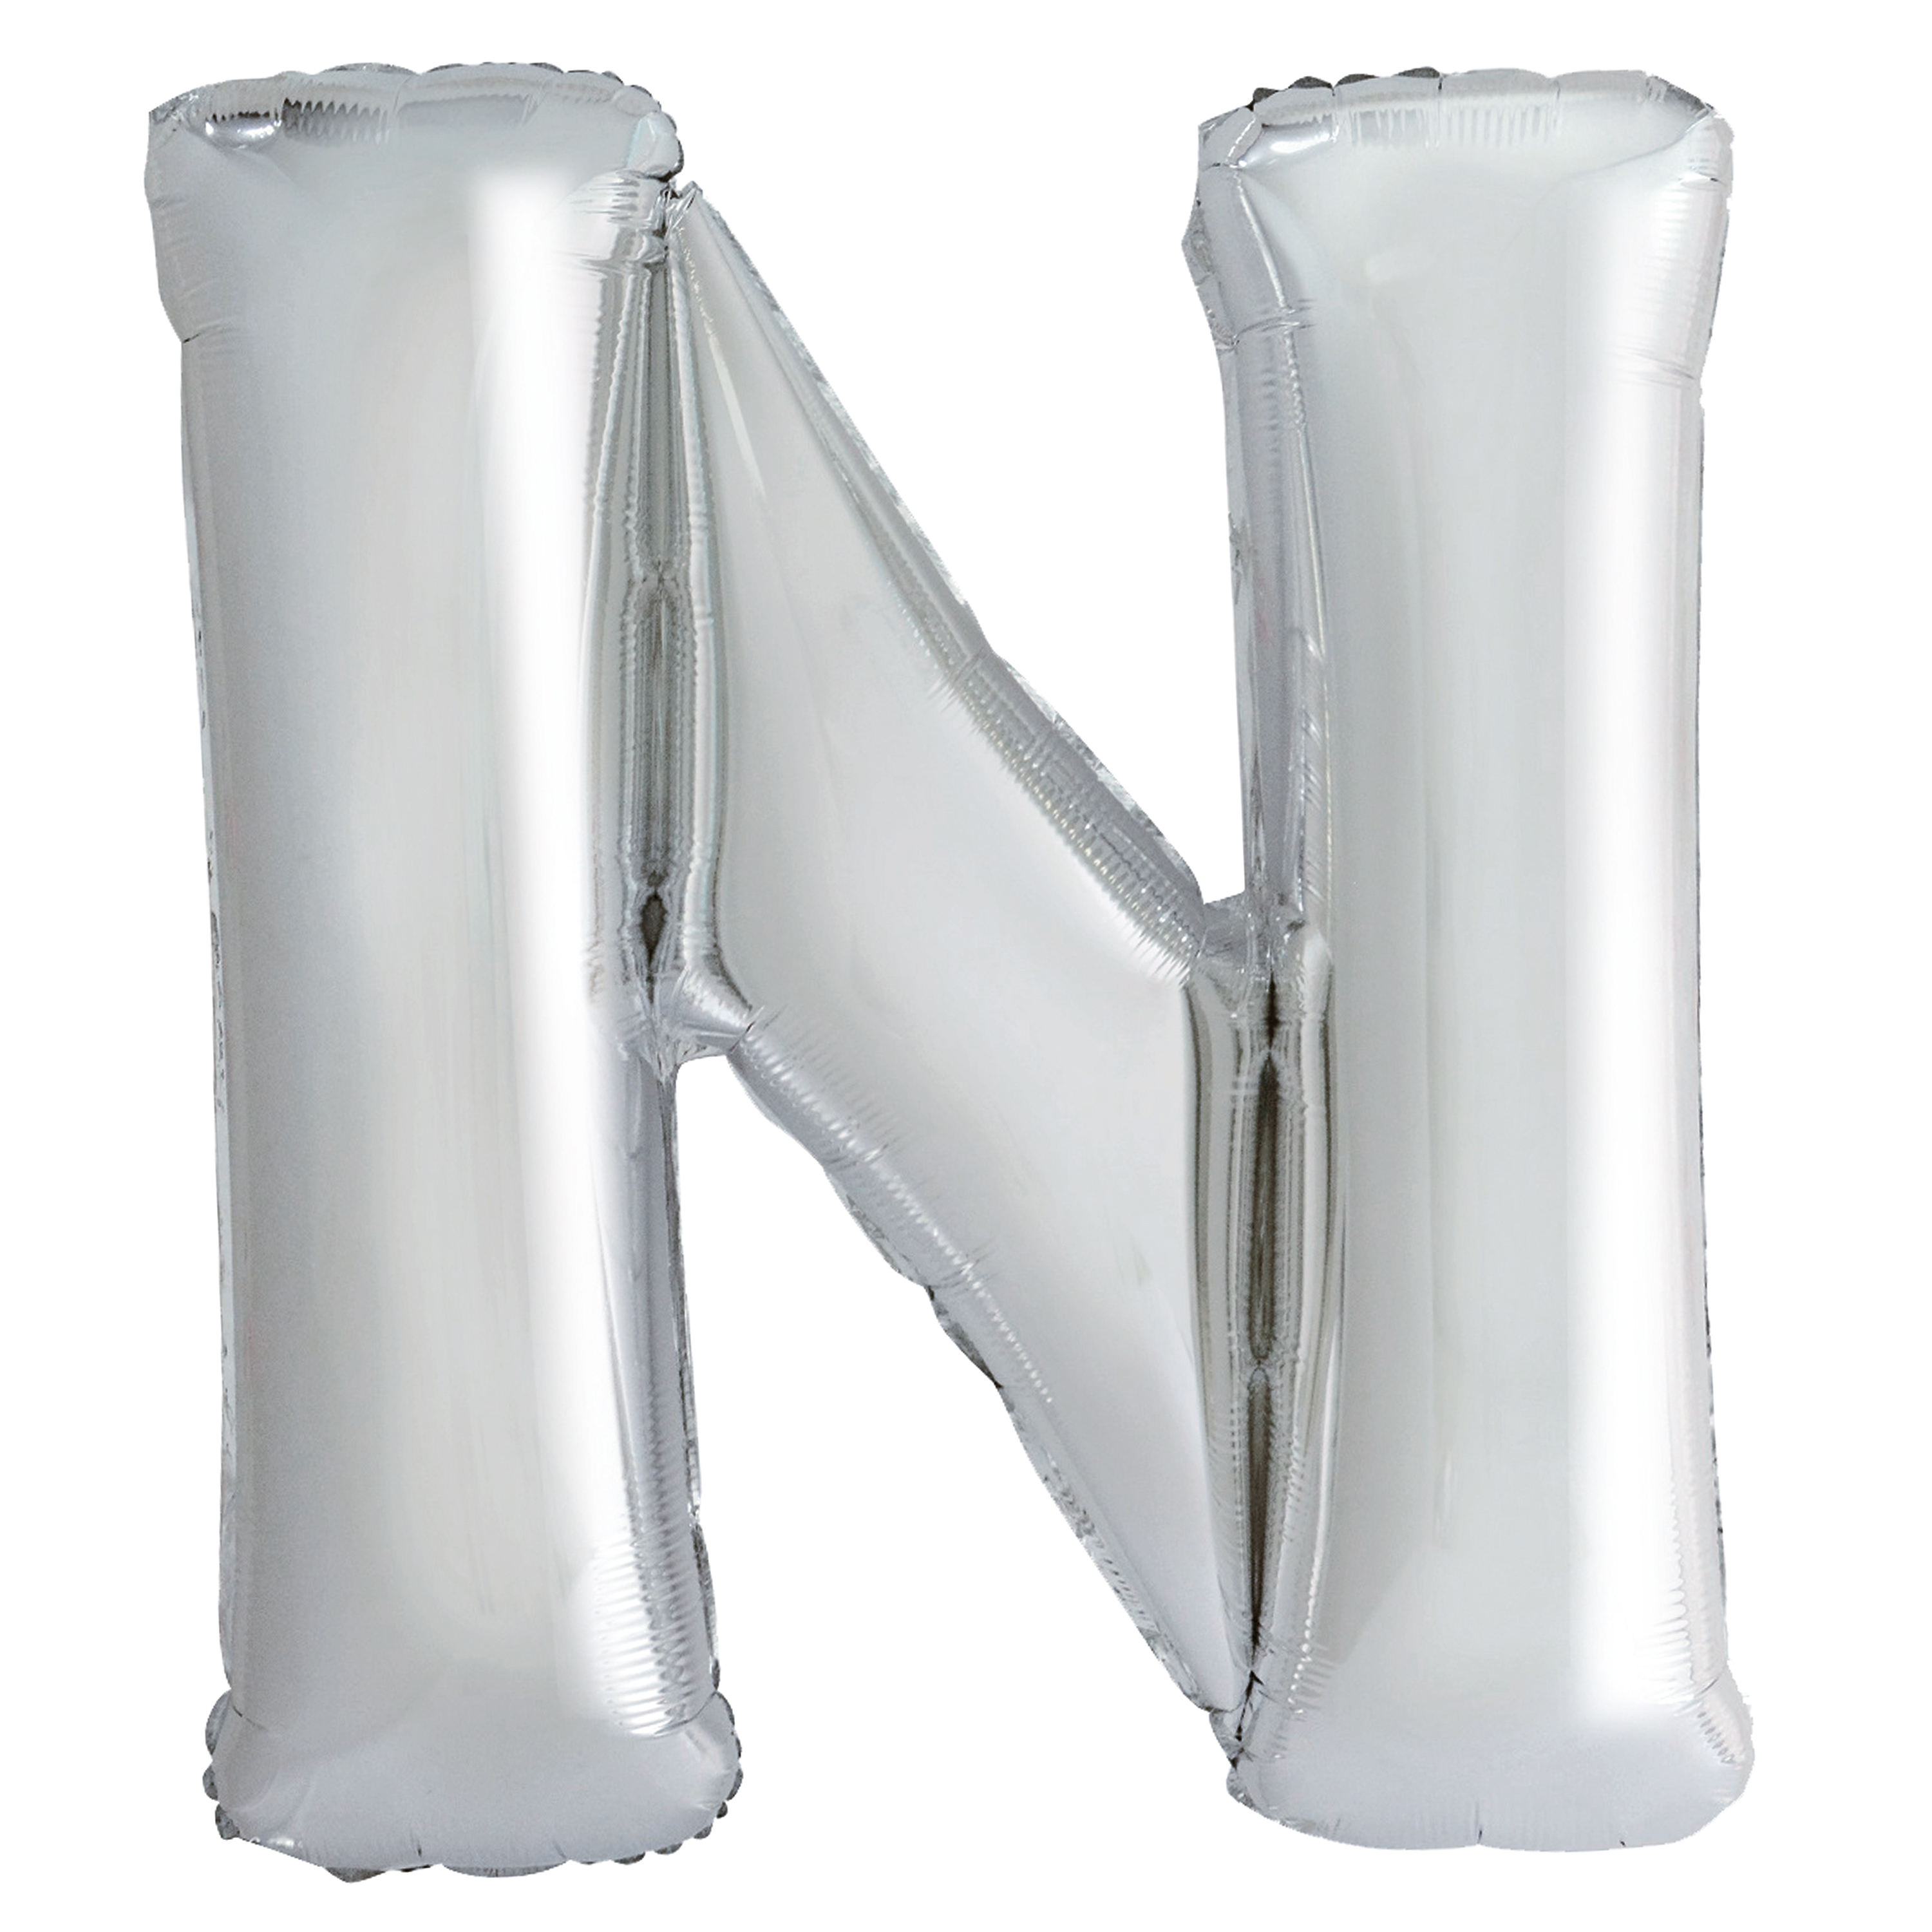 Foil Big Letter Balloon, N, 34 in, Silver, 1ct